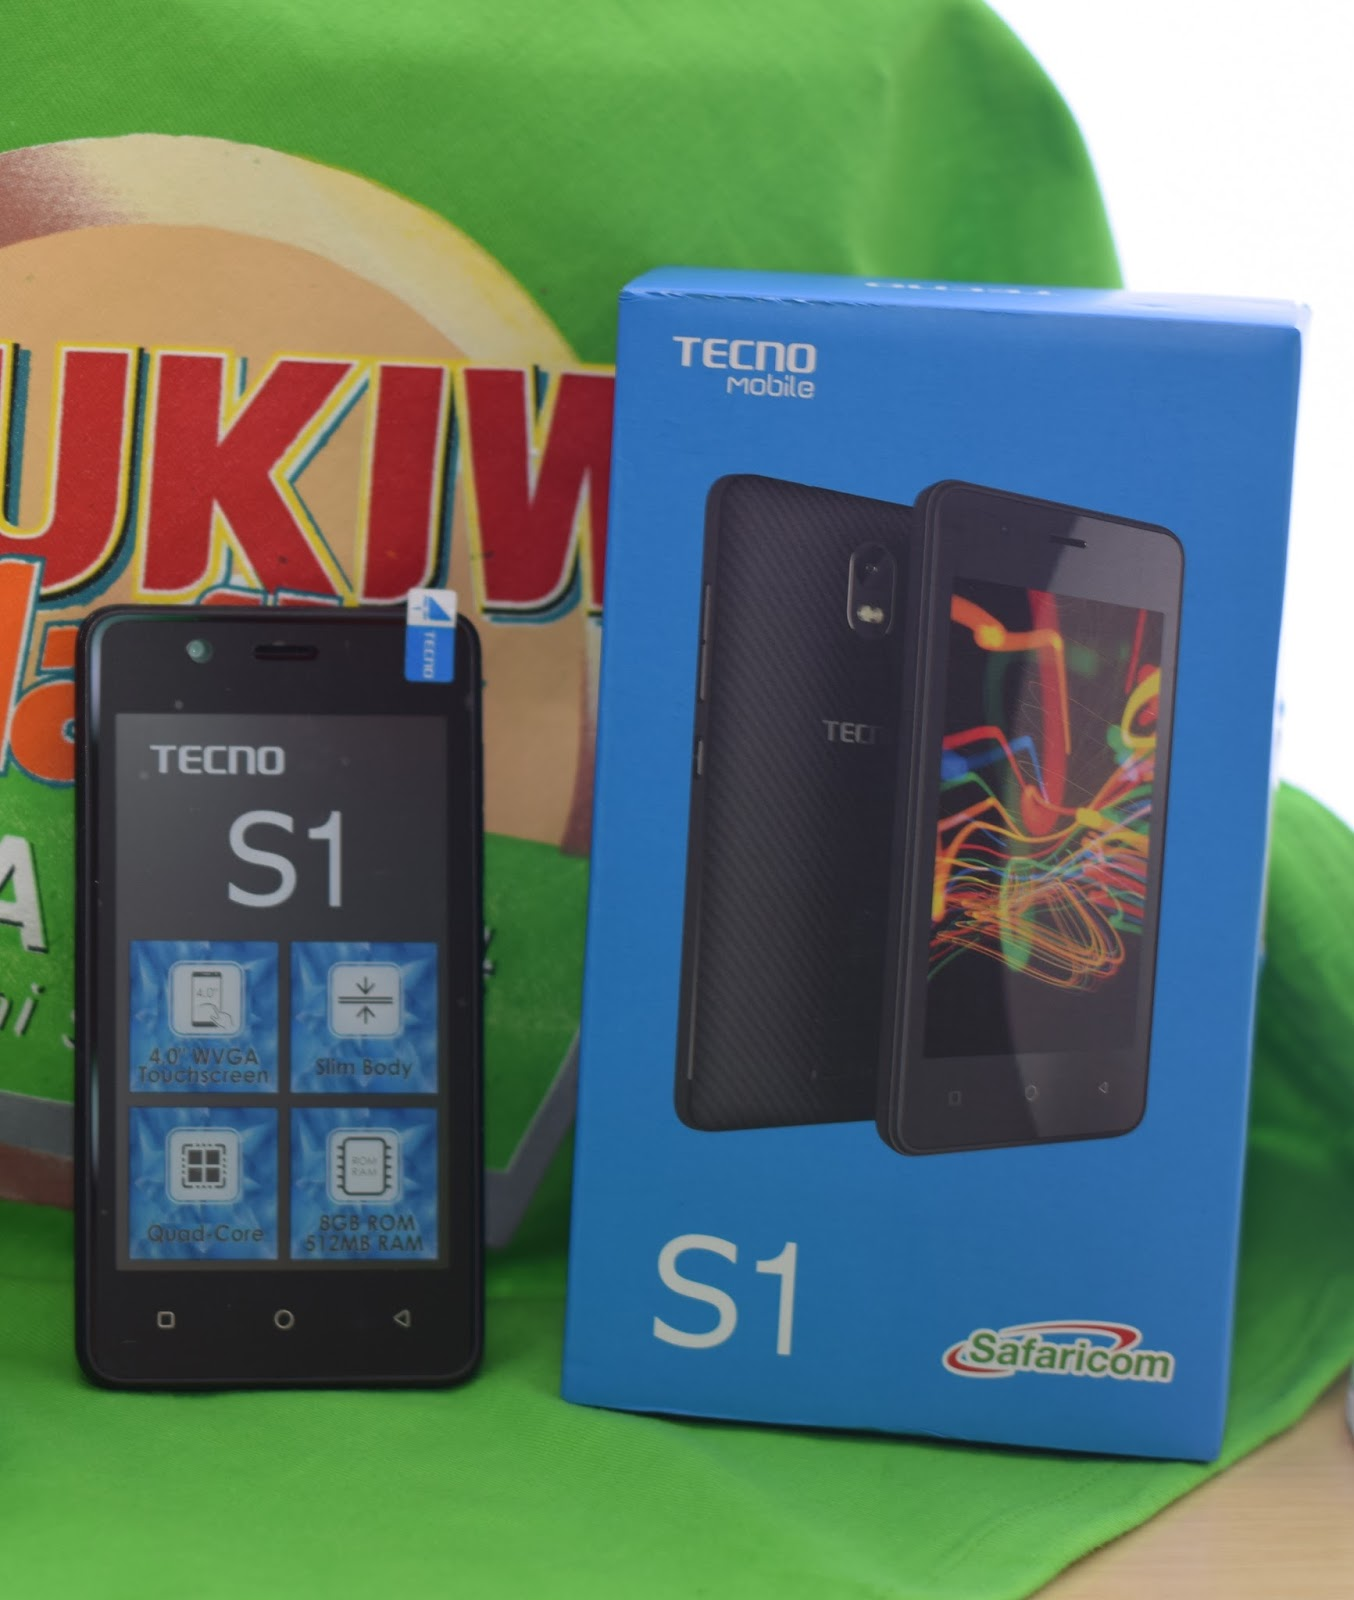 Tecno S1 one of smart phones on sale at a price of 4 500 =